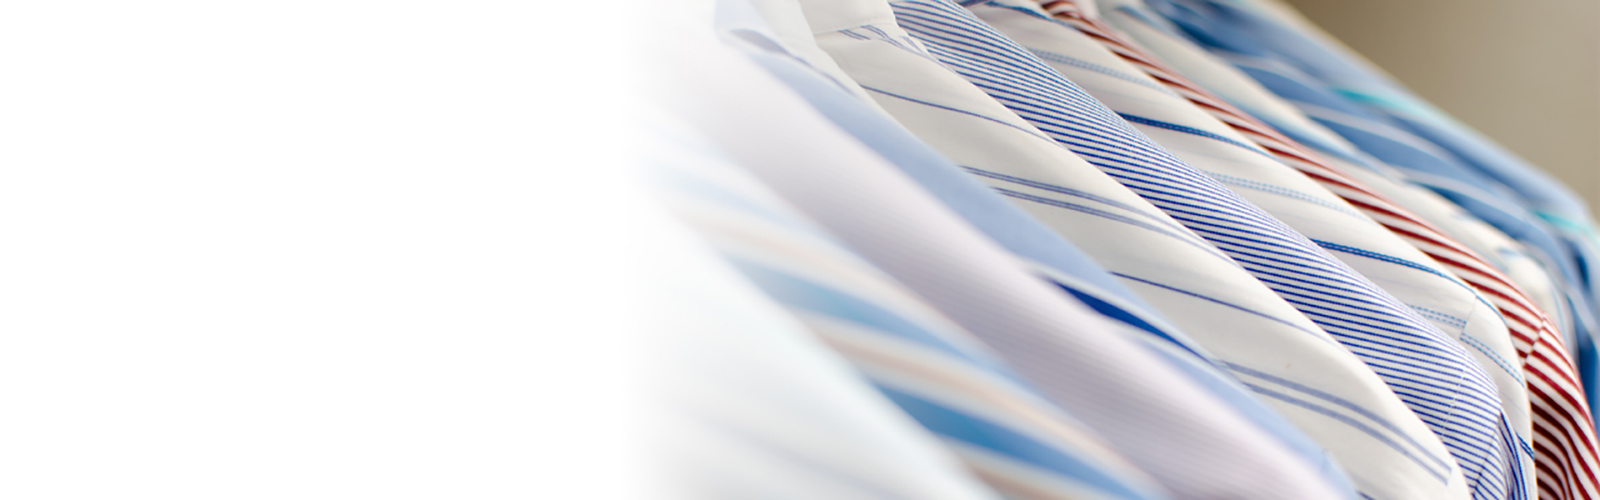 dry cleaning business shirts